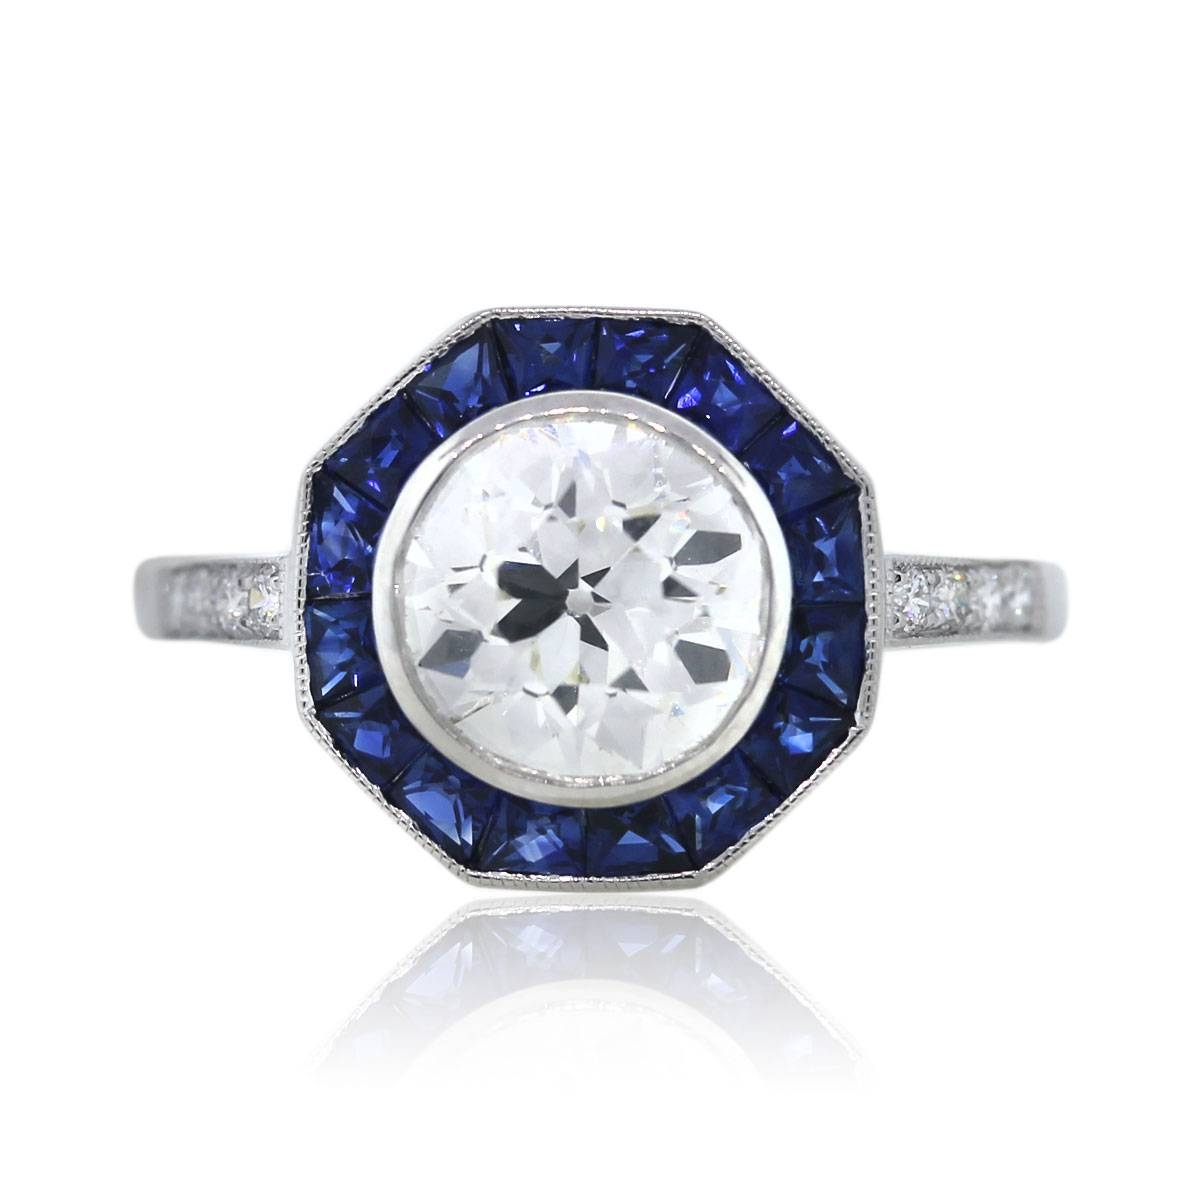 Platinum Octagonal Art Deco Diamond And Sapphire Engagement Ring Regarding Engagement Rings Sapphire (Gallery 15 of 15)